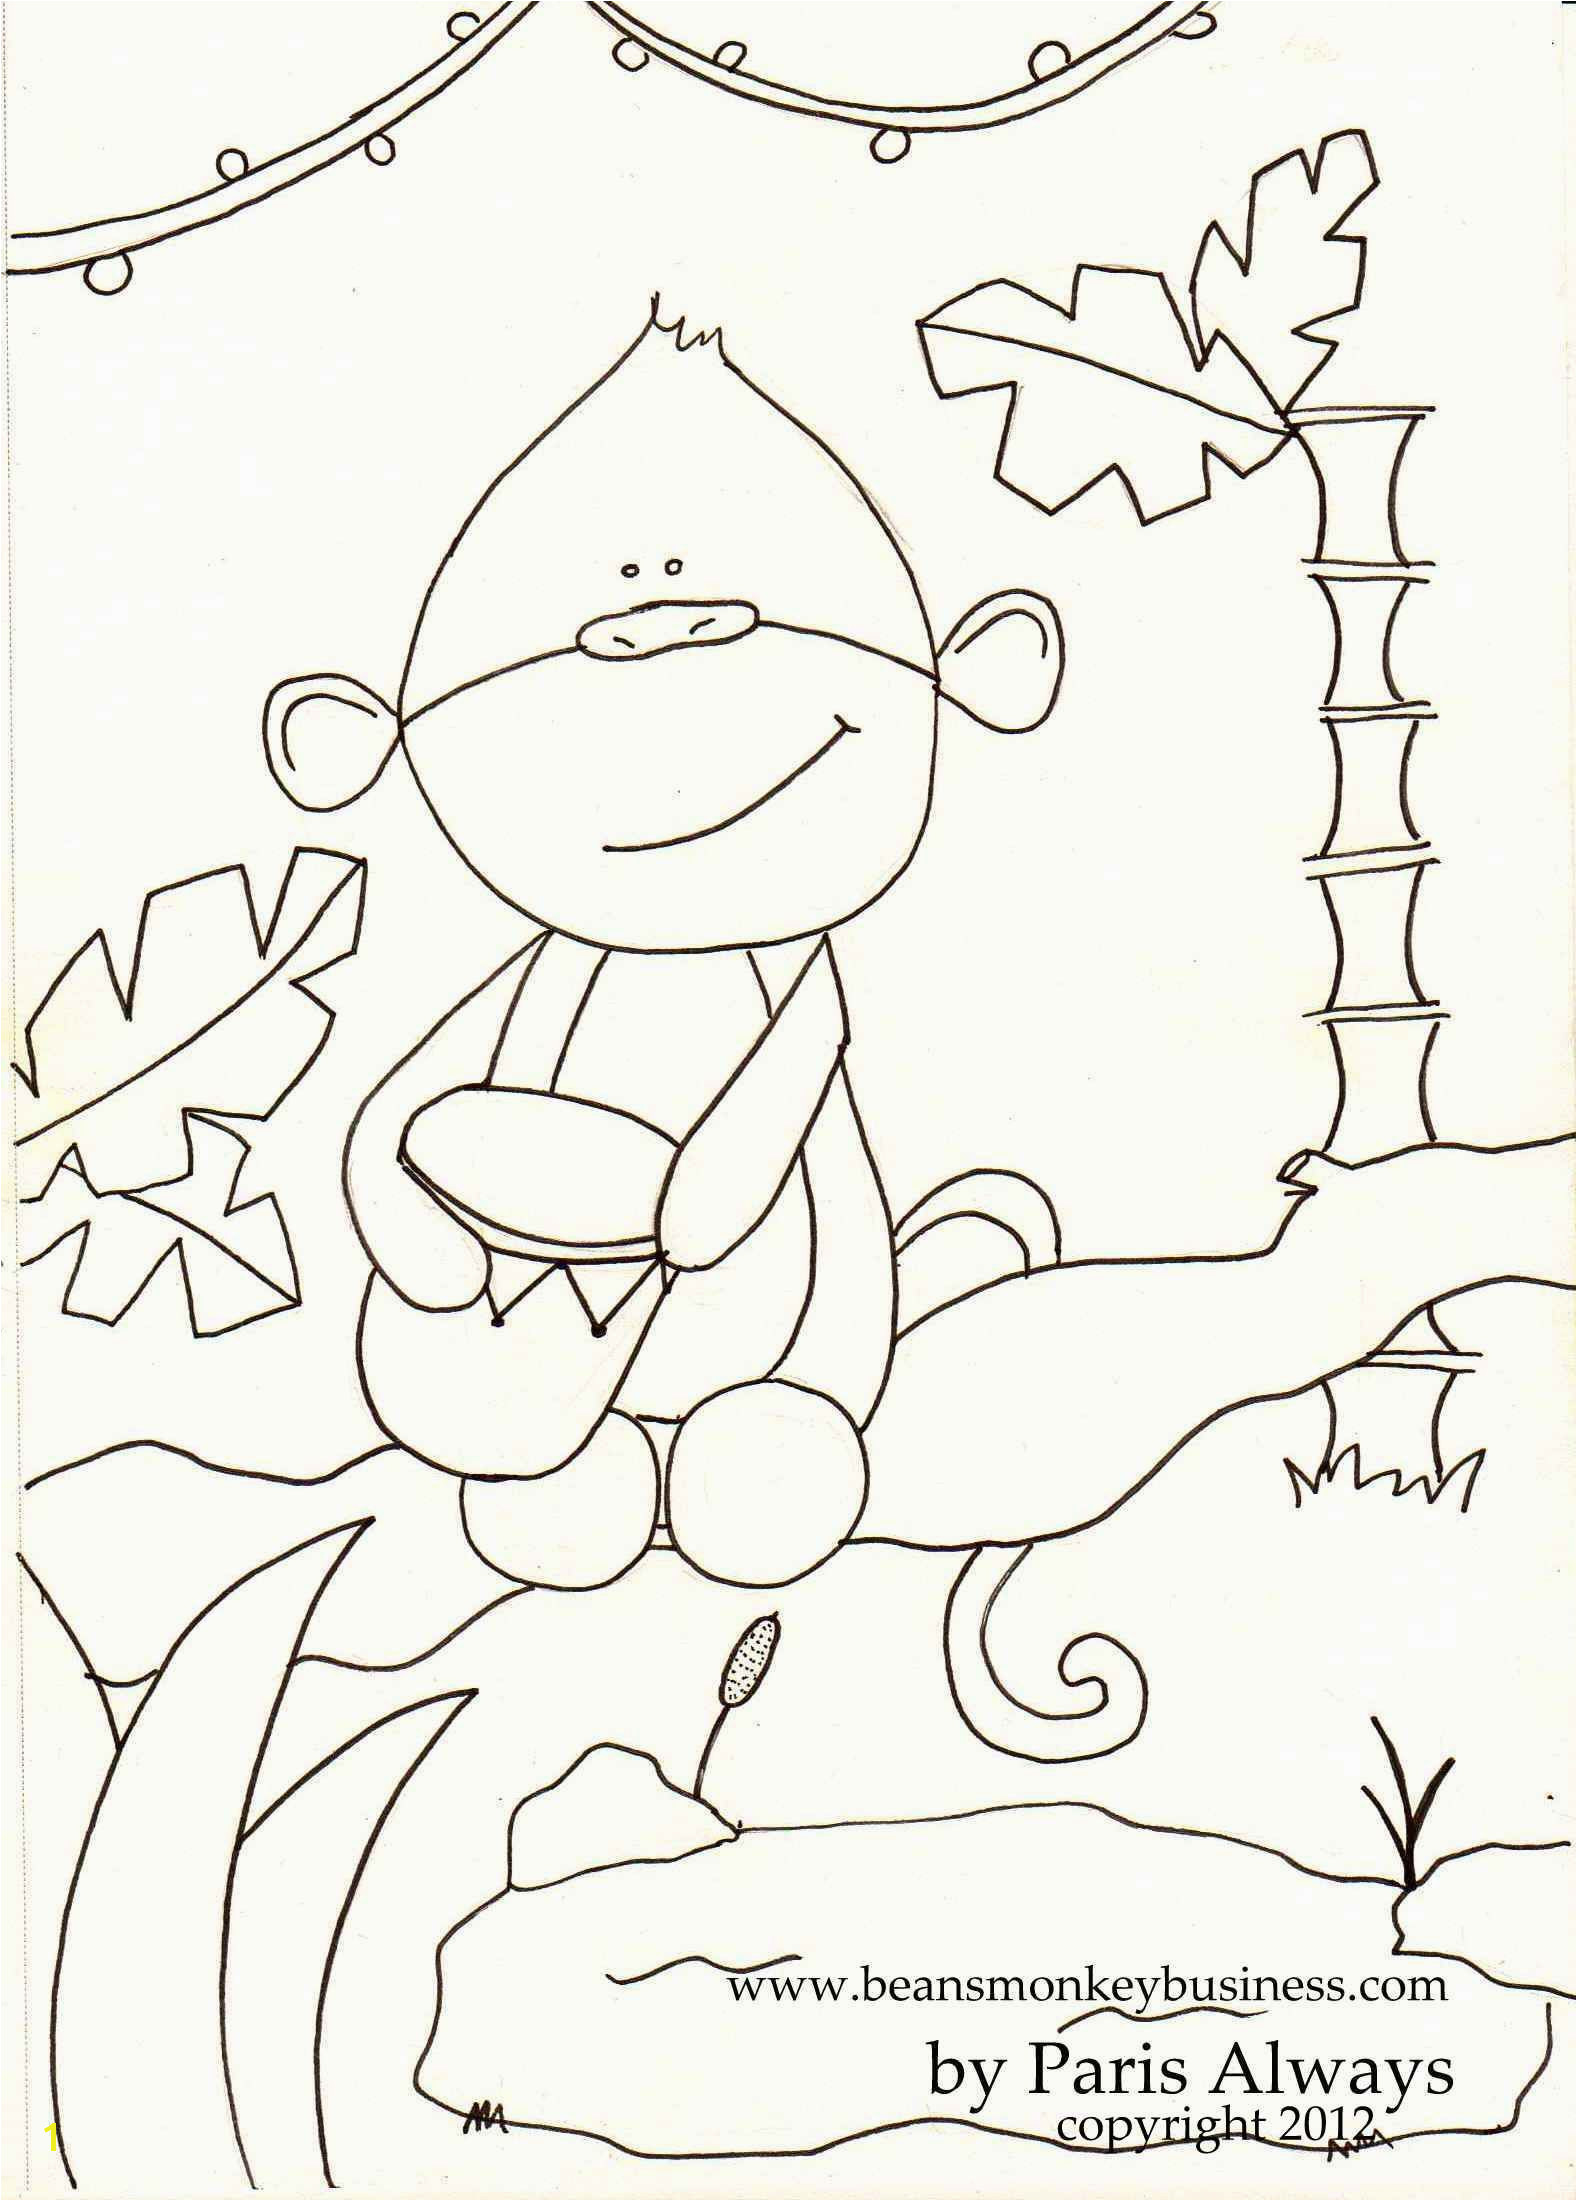 Paris did a Coloring Page for Bean and kids to color and use for our activities